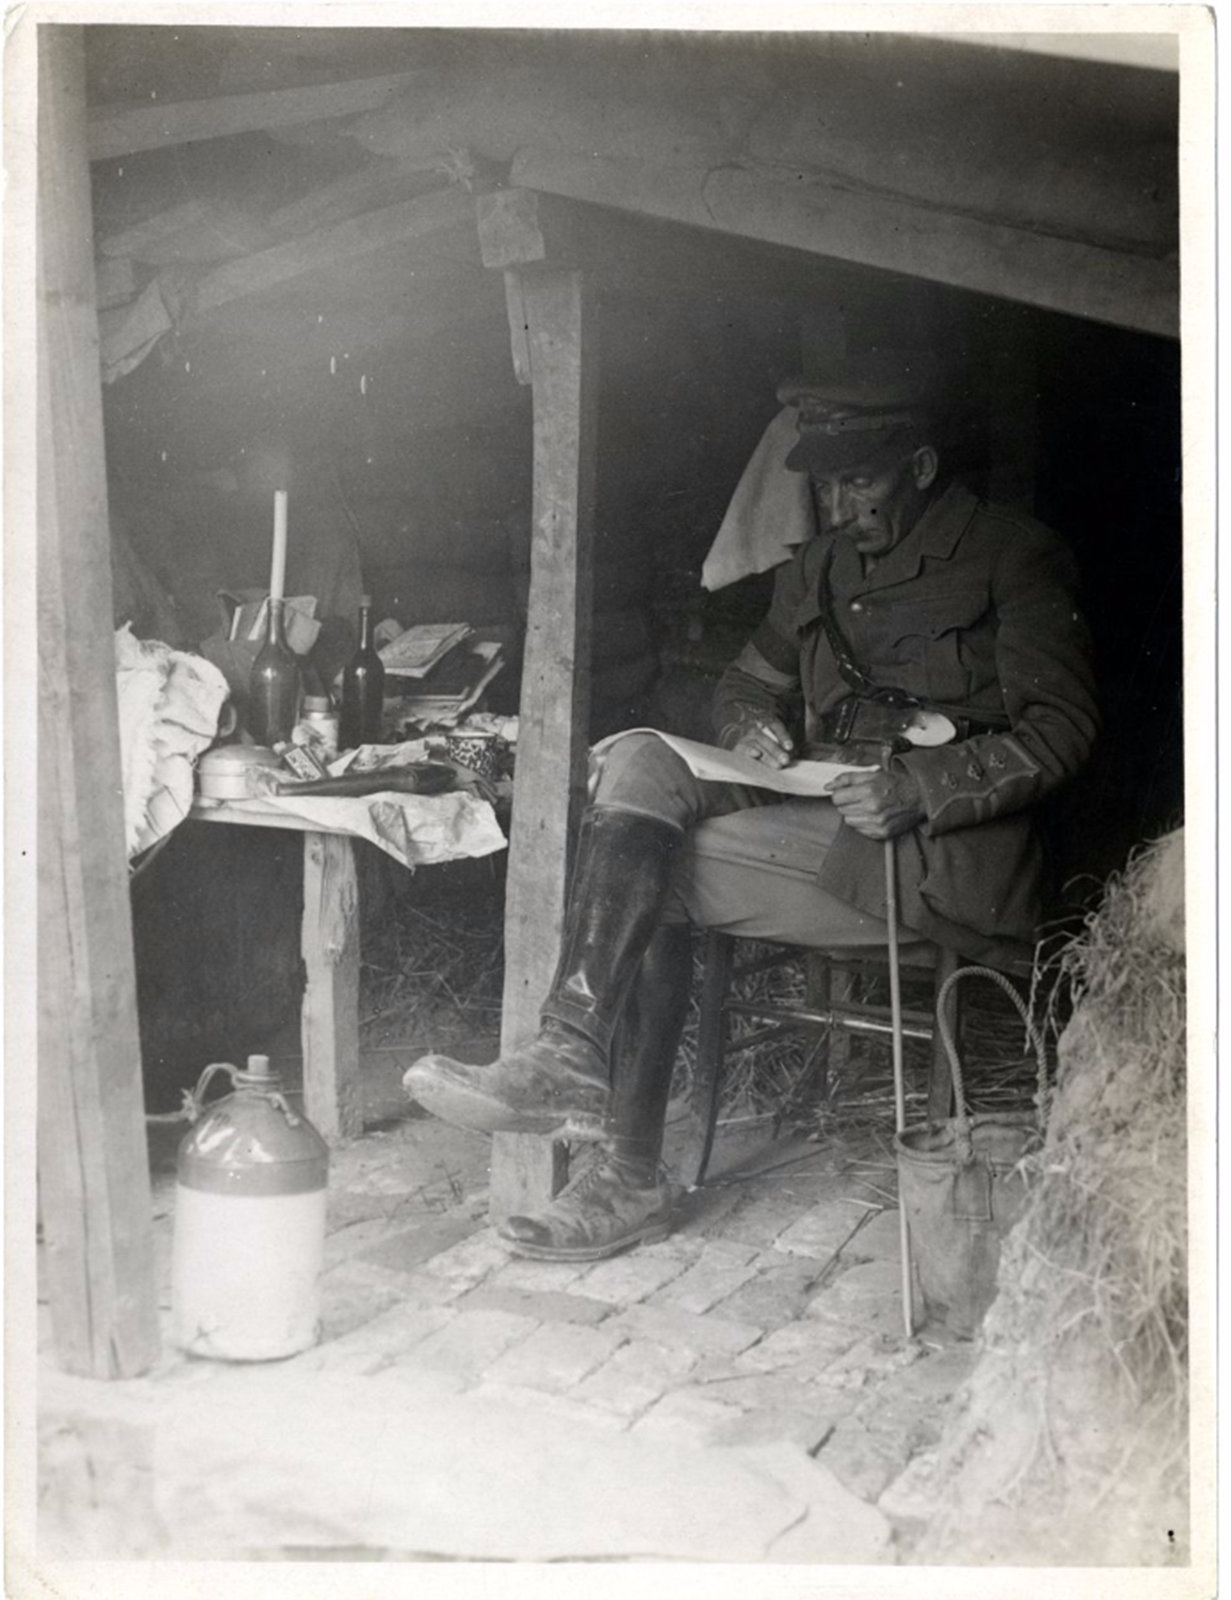 A British Officer reading papers in a dugout, H. D. Girdwood 1915-08-09, The British Library, Public Domain Mark